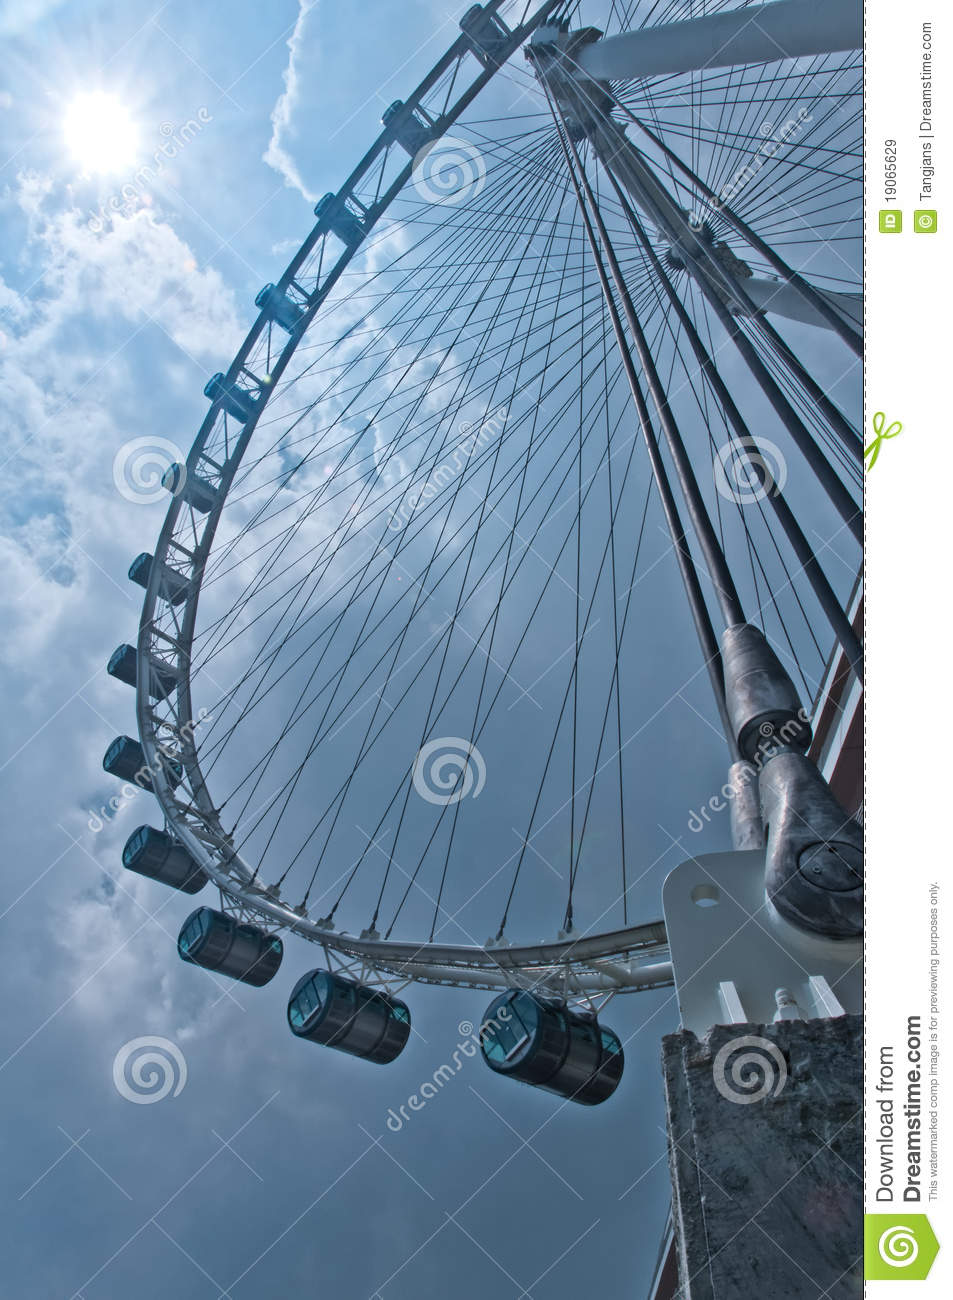 Ode to the Singapore Flyer